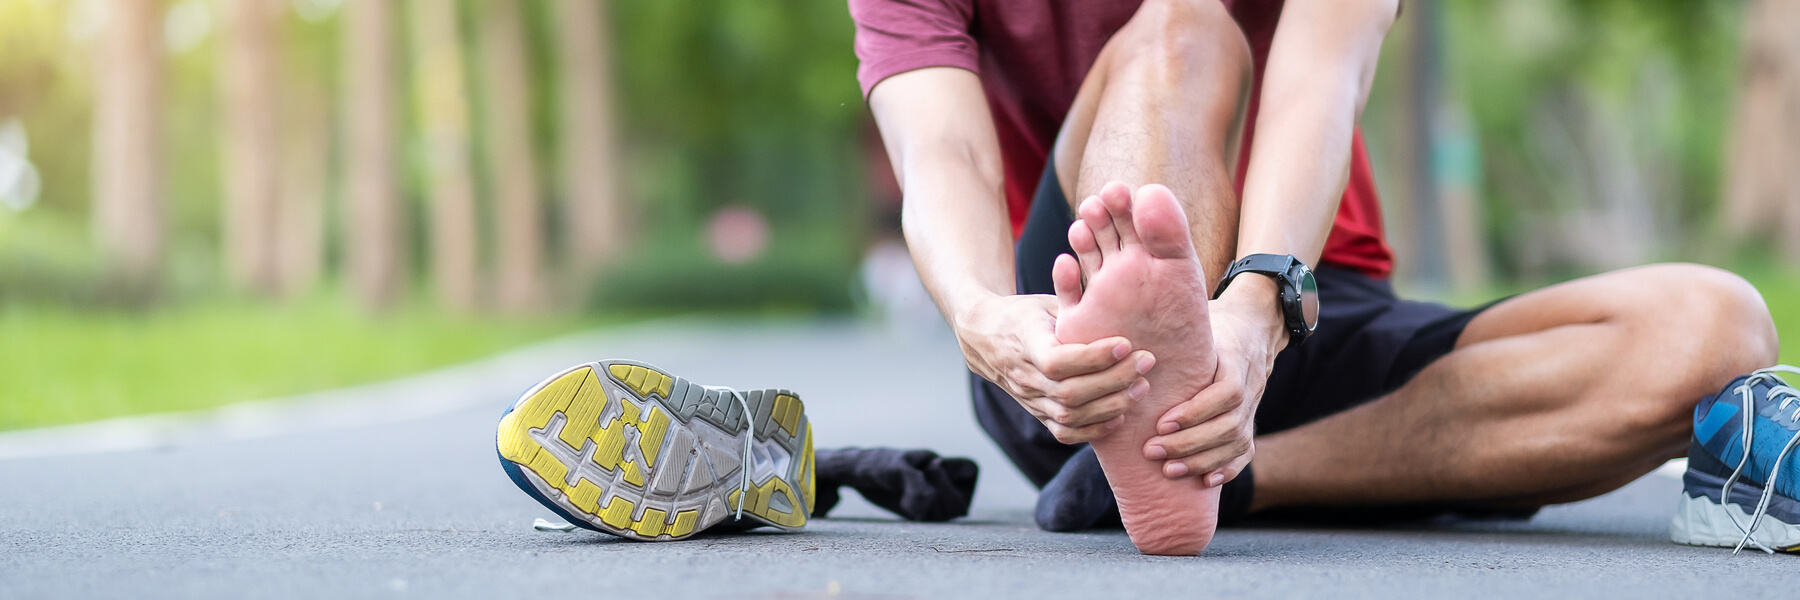 Young adult male sitting on ground with his running shoe off, holding foot or heel muscle pain, runner having heel or foot ache or pain due to Plantar fasciitis